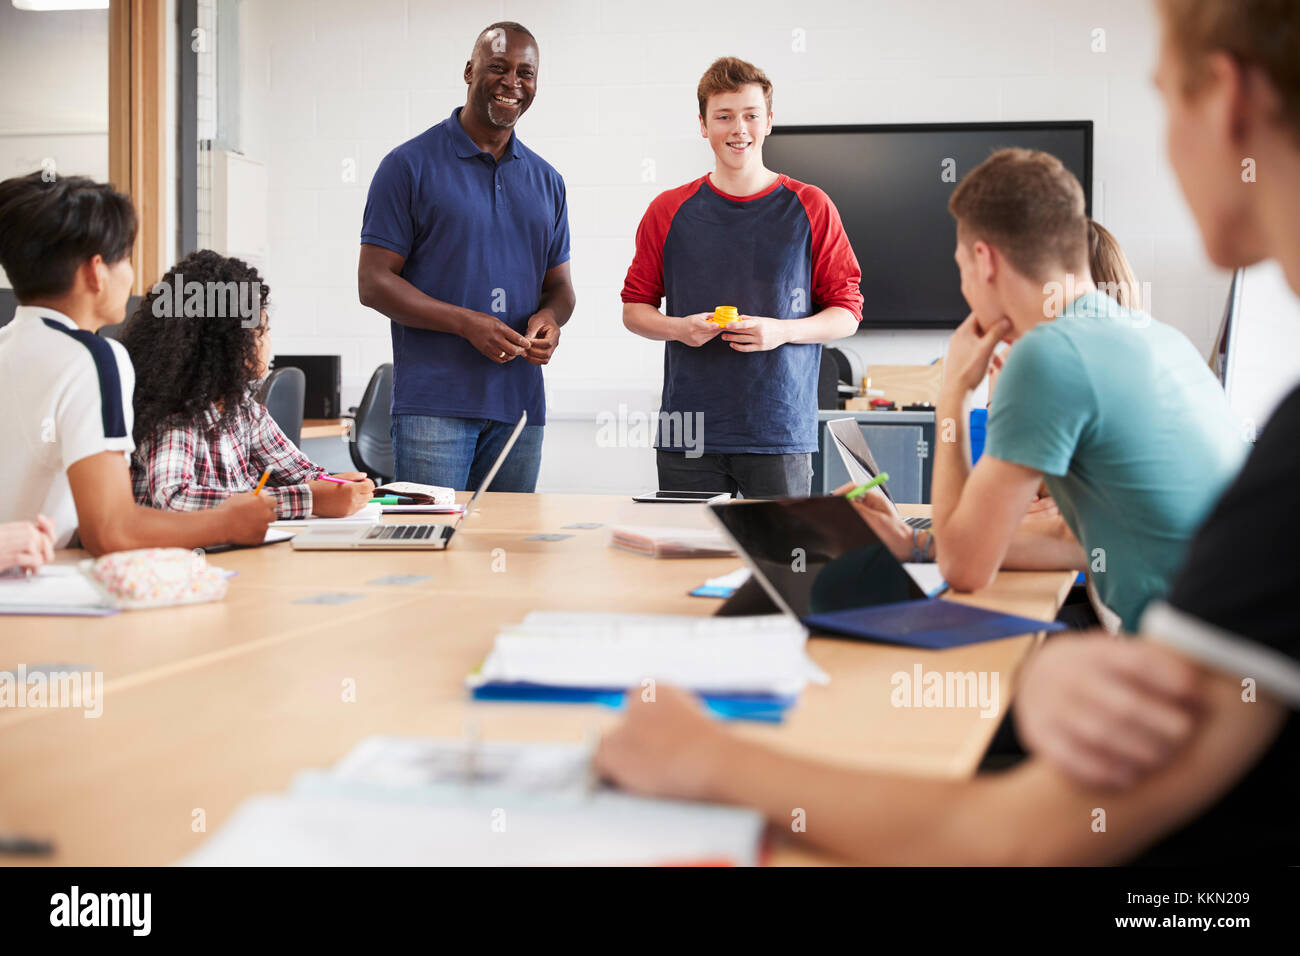 College Student Making Presentation In CAD/3D Printing Class - Stock Image